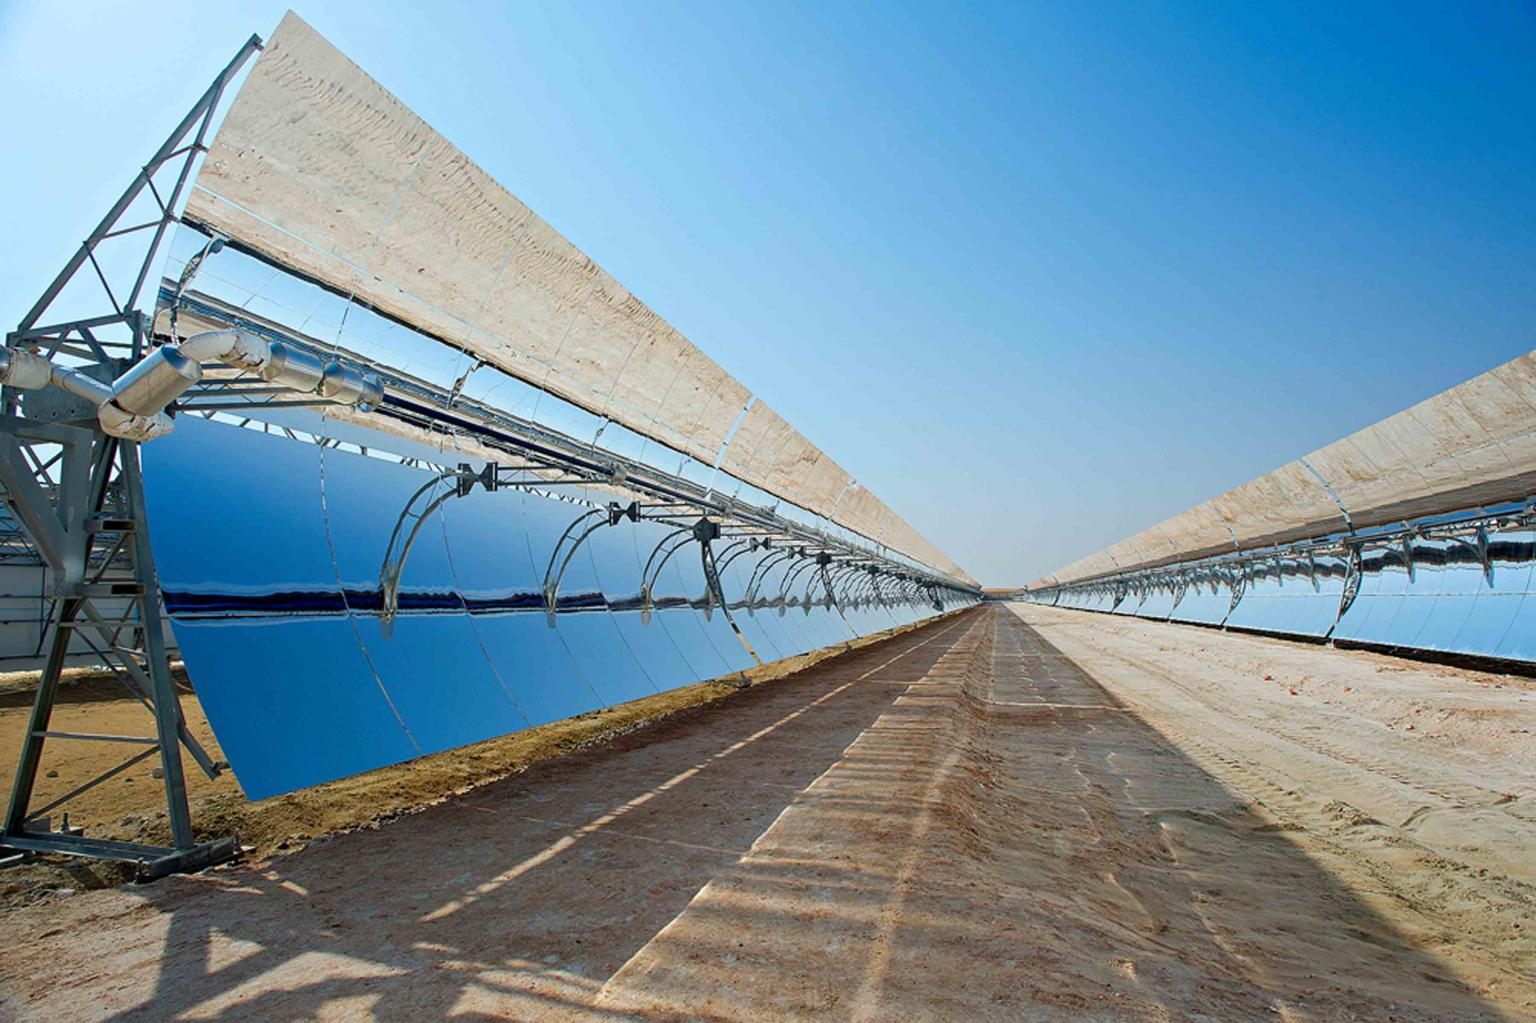 Solar is the critical resource and focus for the UAE, with different forms of solar energy accounting for more than 90% of renewable energy use in the International Renewable Energy Agency REmap 2030 report. Photos: Masdar Institute